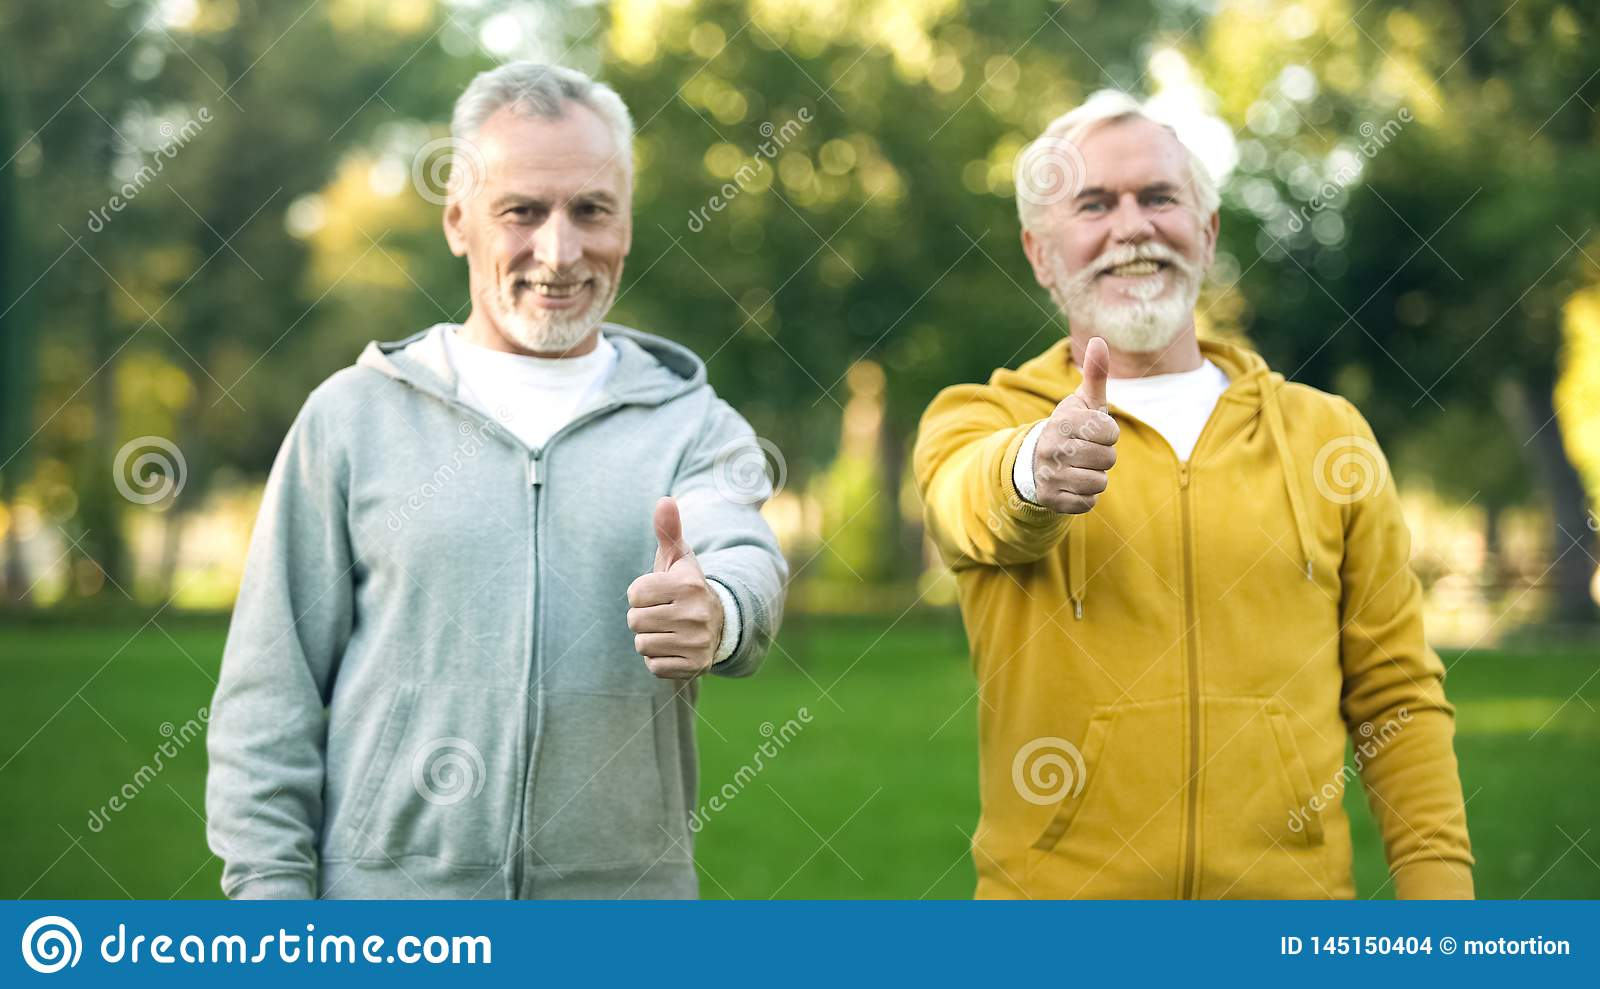 Two smiling elderly men in sportswear showing thumbs up, healthy lifestyle